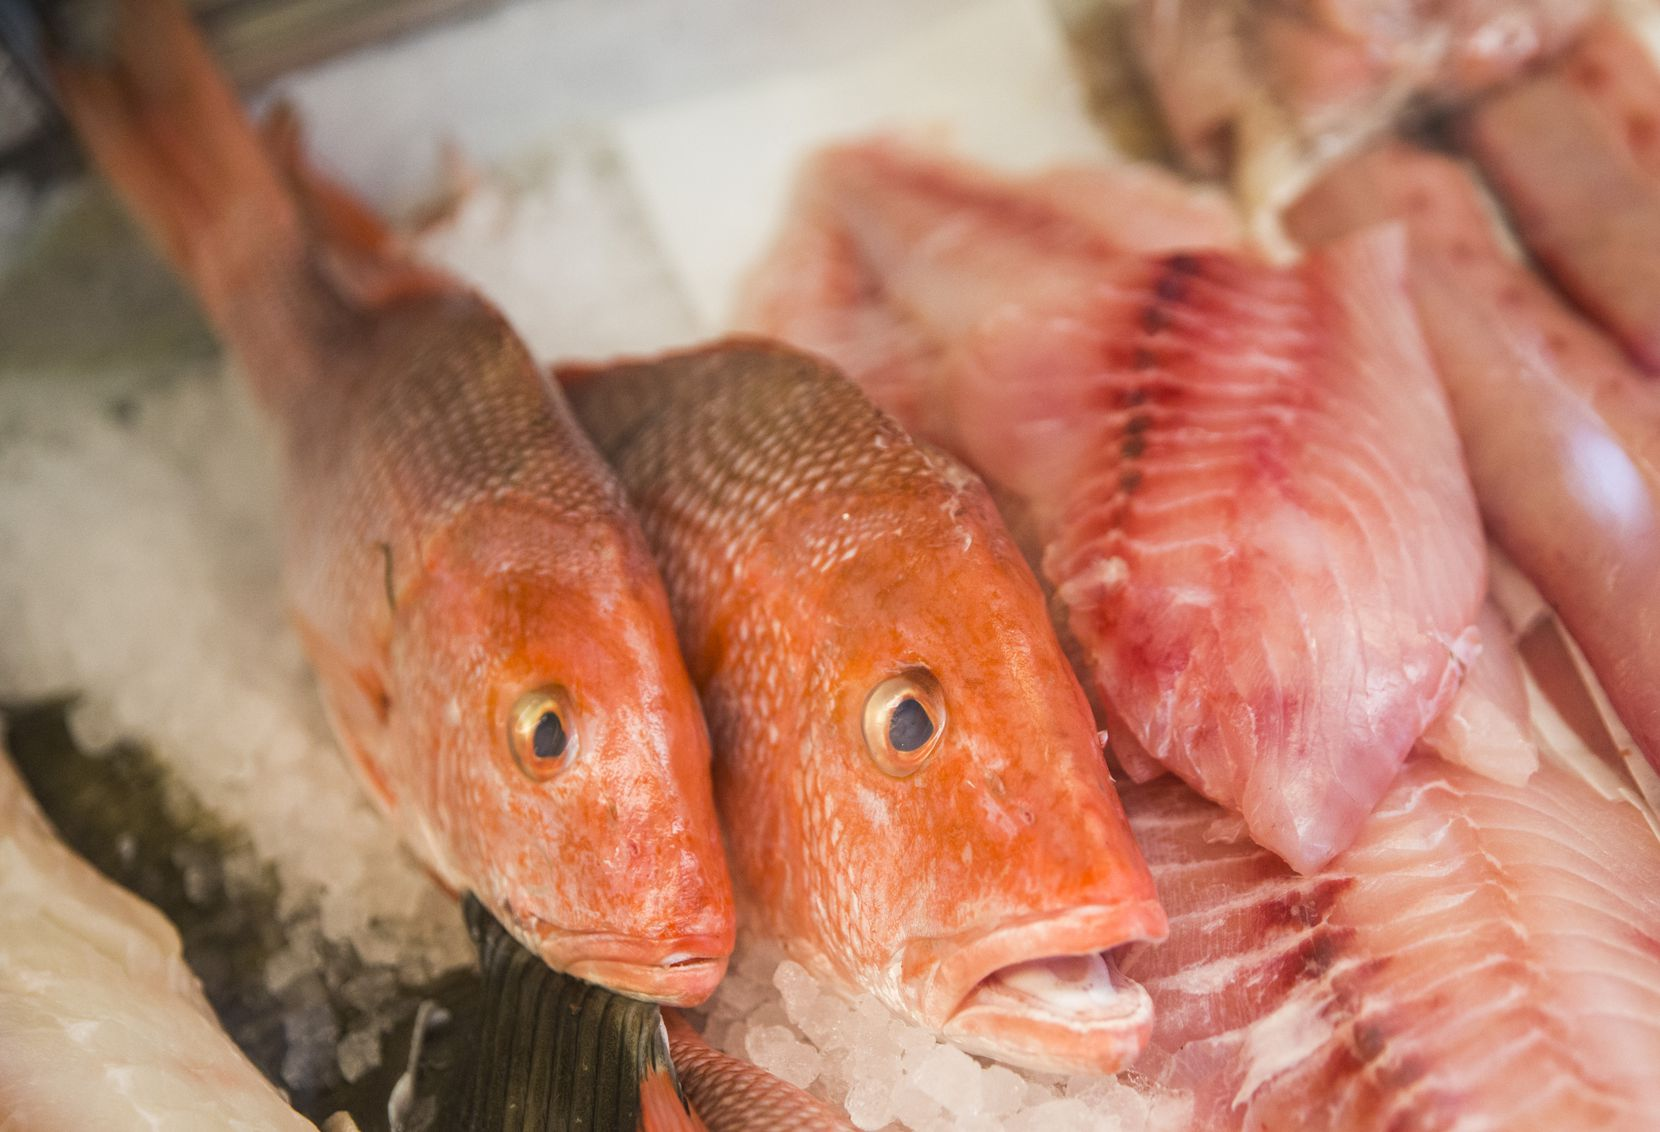 Two whole red snappers are on display among other fish at Sea Breeze Fish Market in Plano.